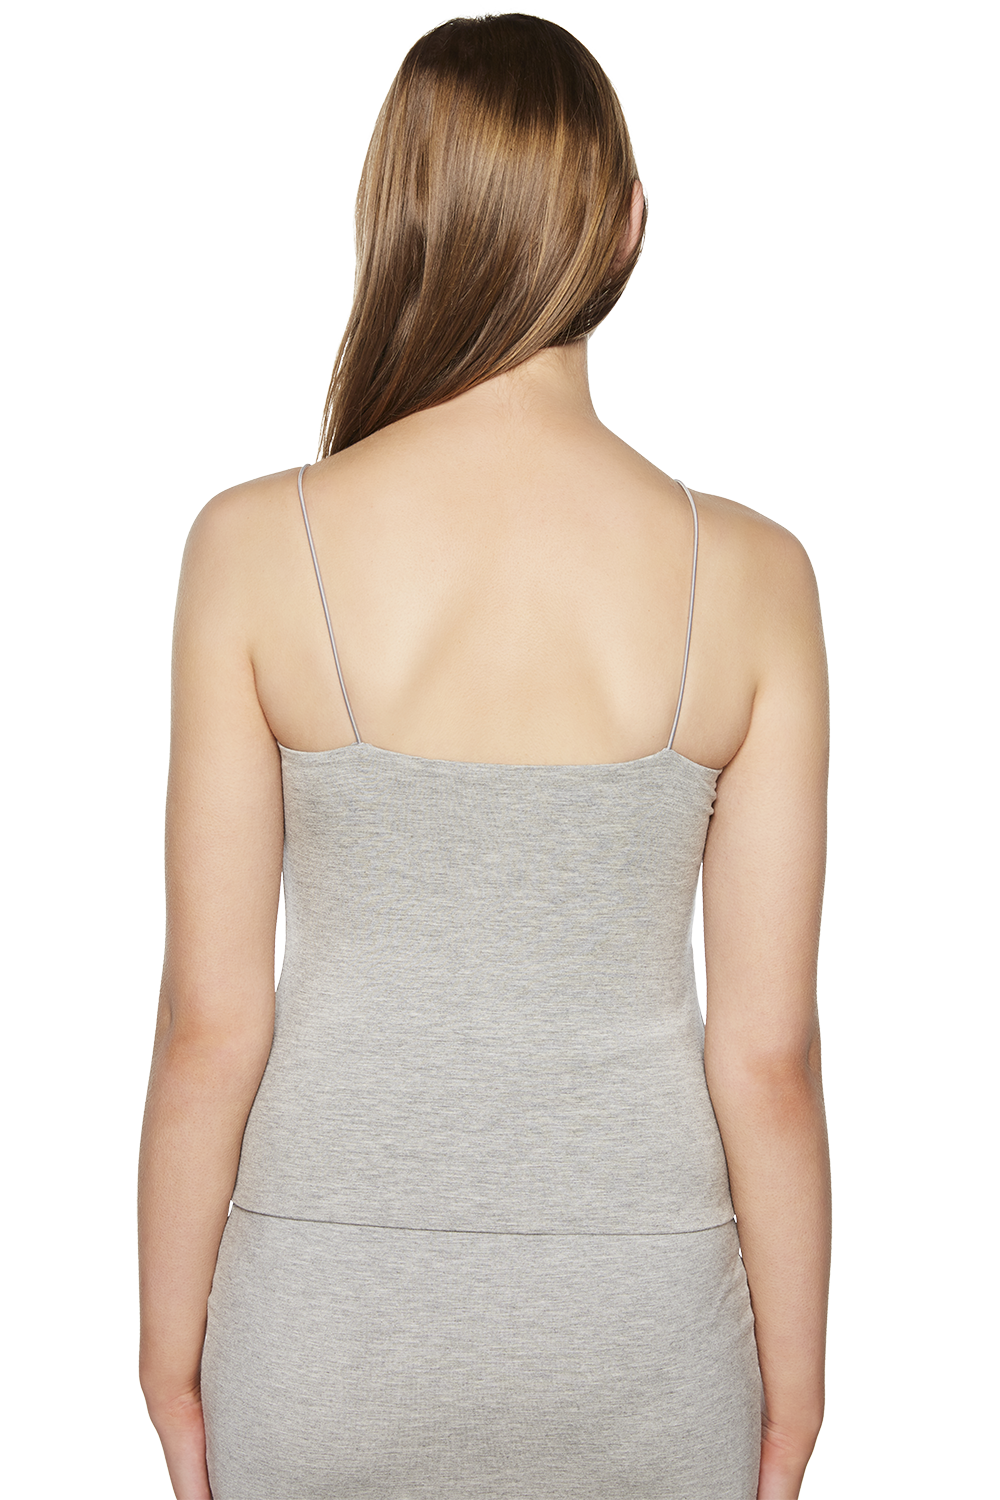 OLYMPIA TOP in colour PALOMA